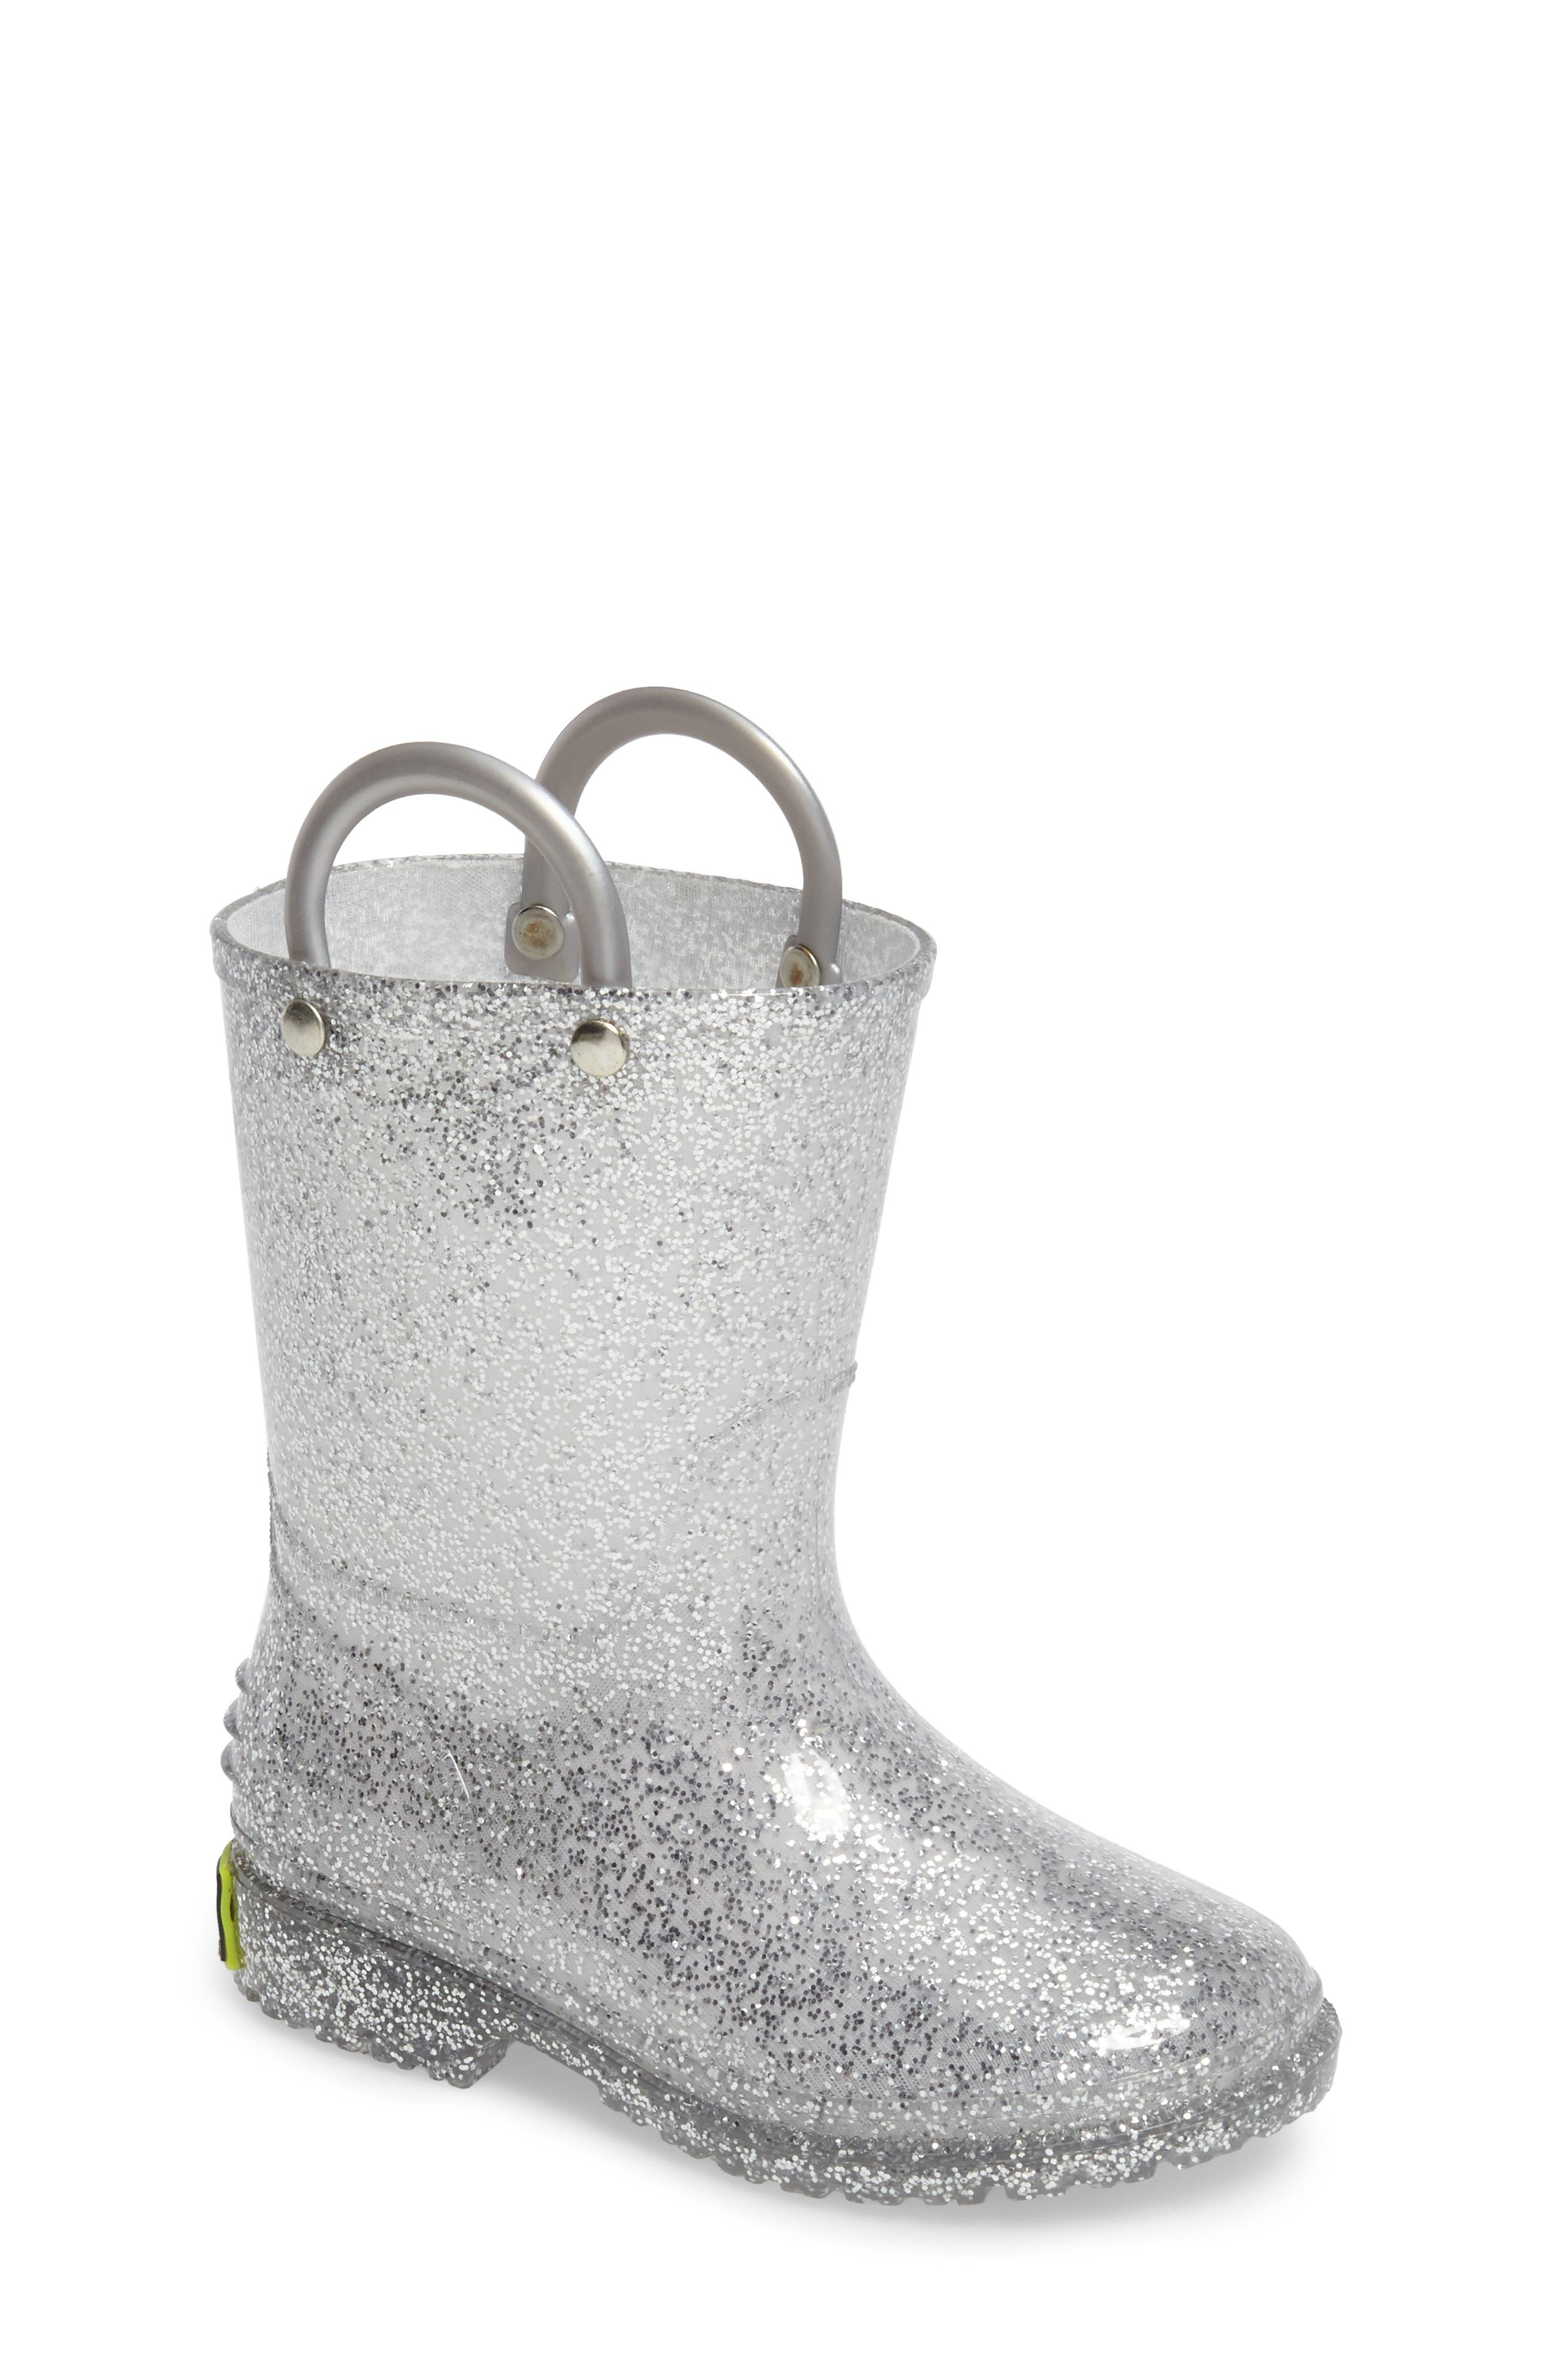 Glitter Rain Boot,                             Main thumbnail 1, color,                             SILVER